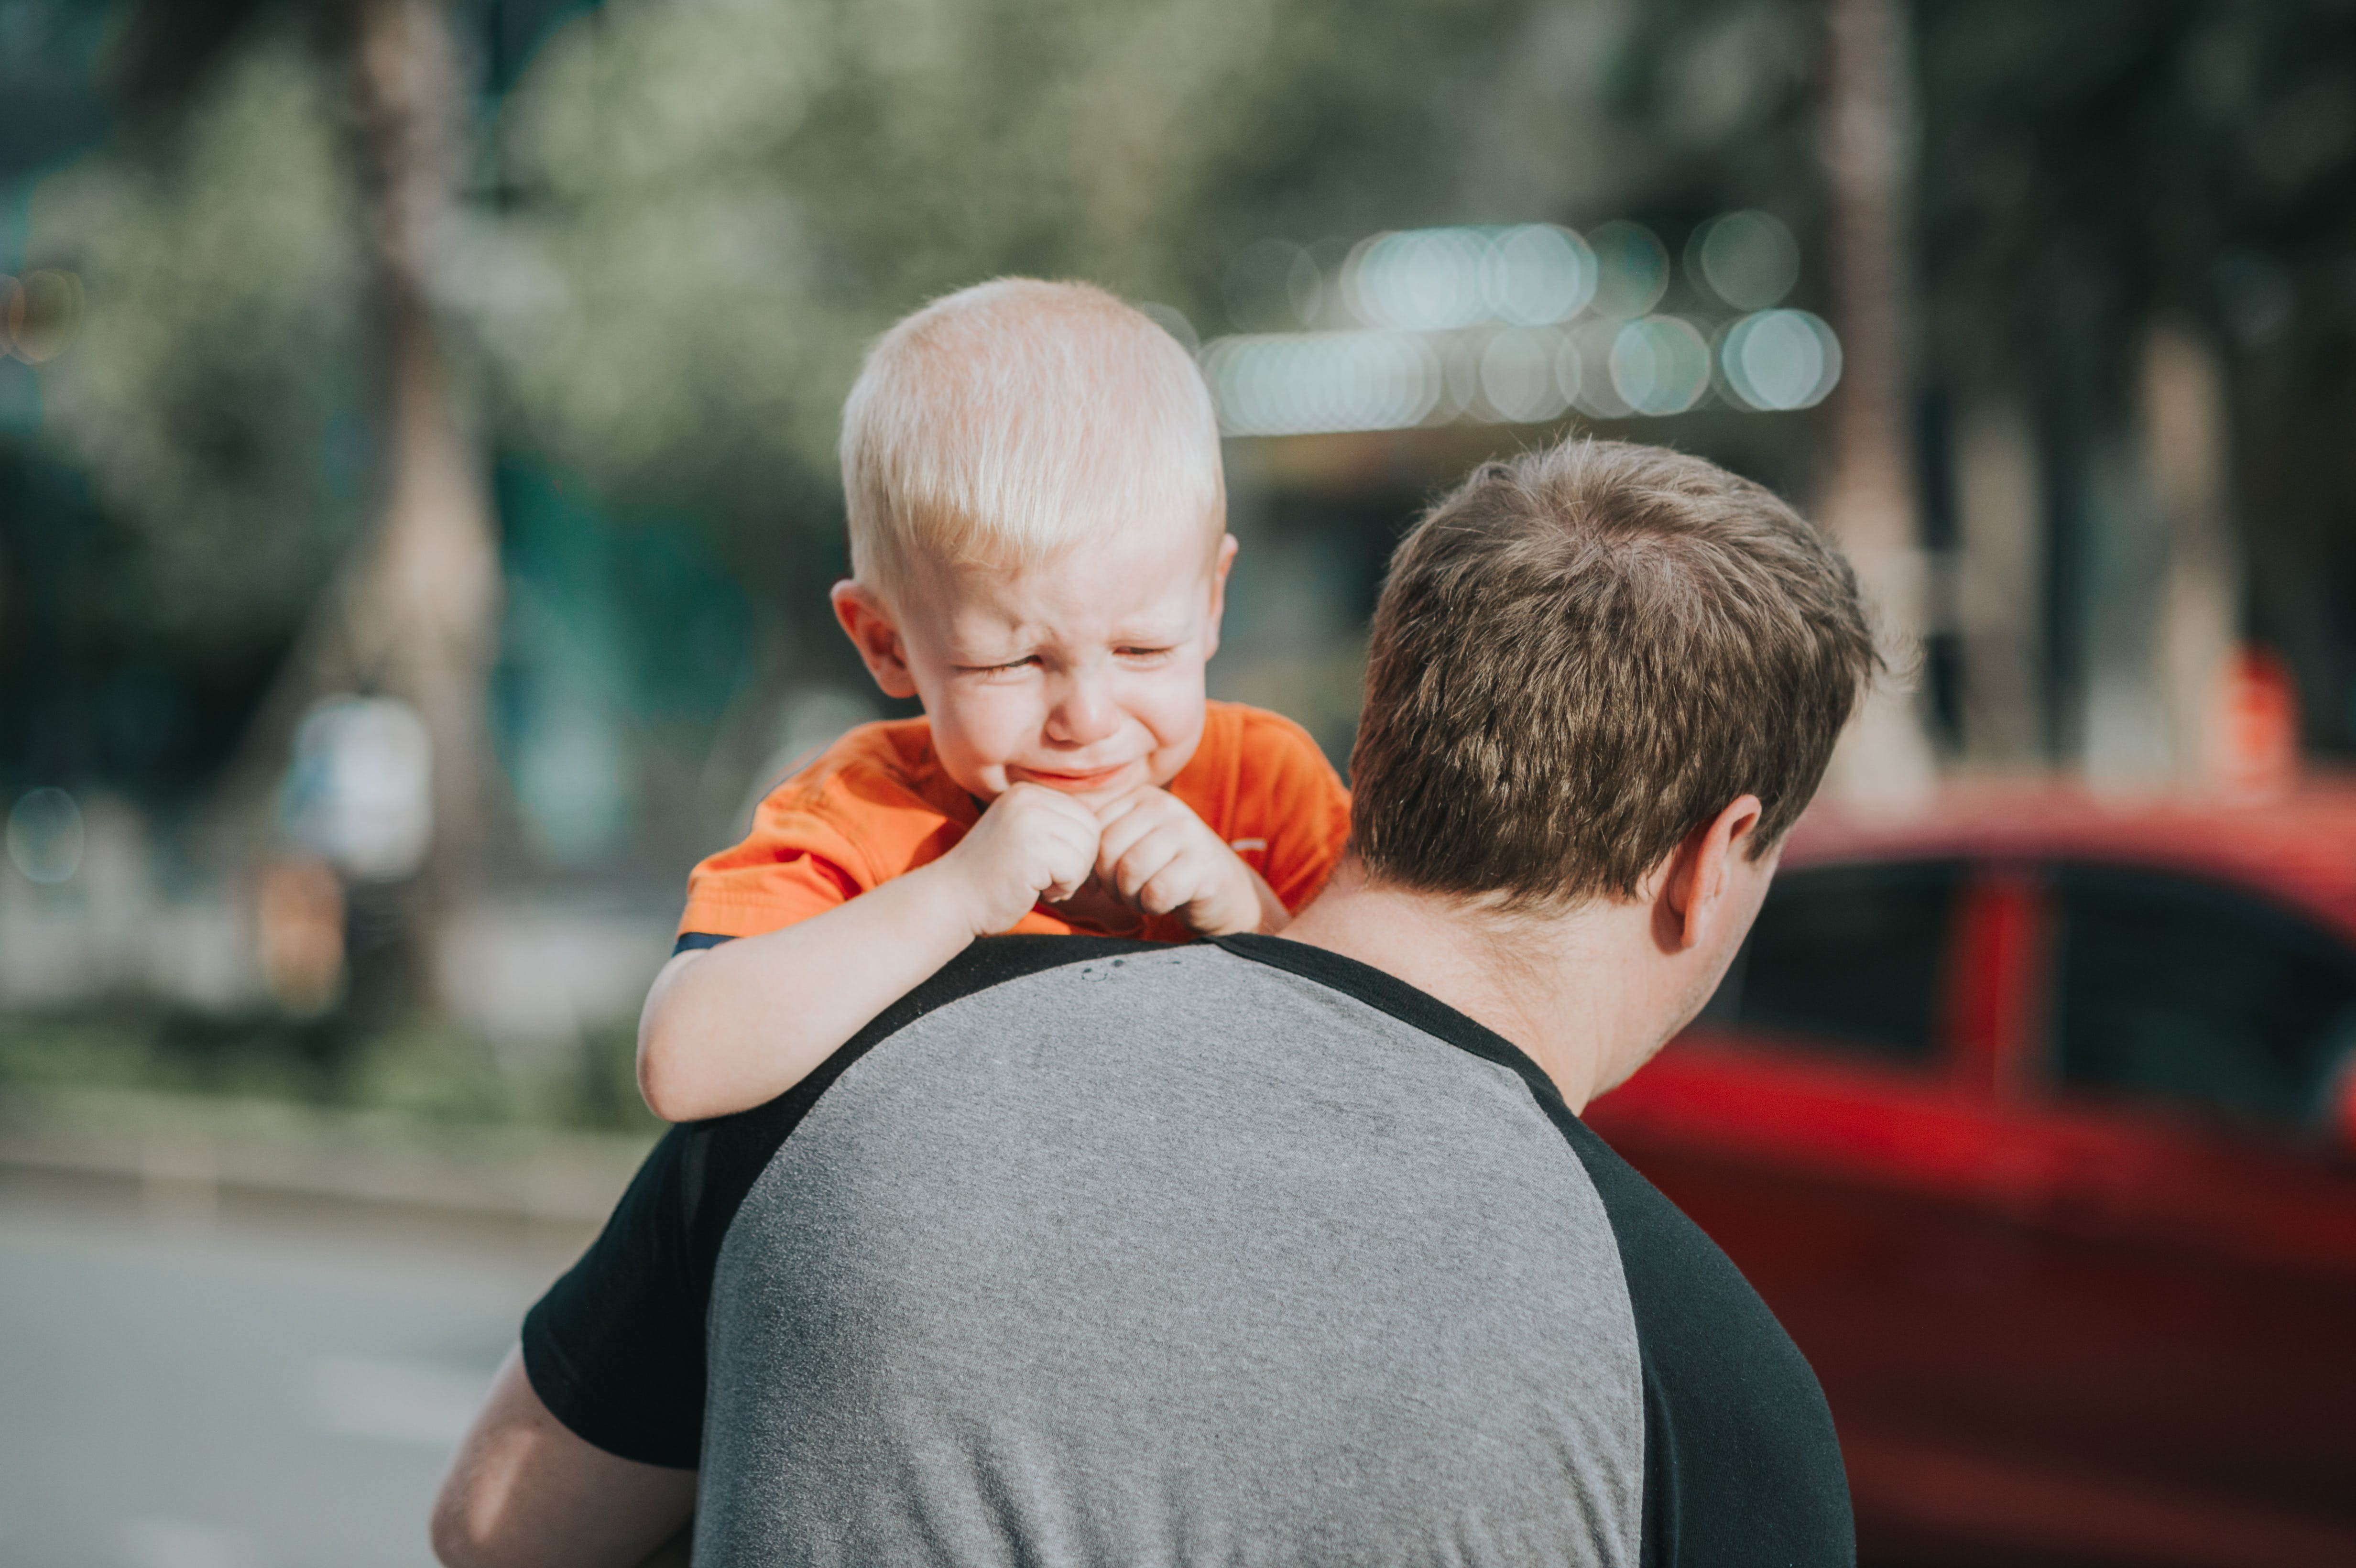 Man Carrying Child